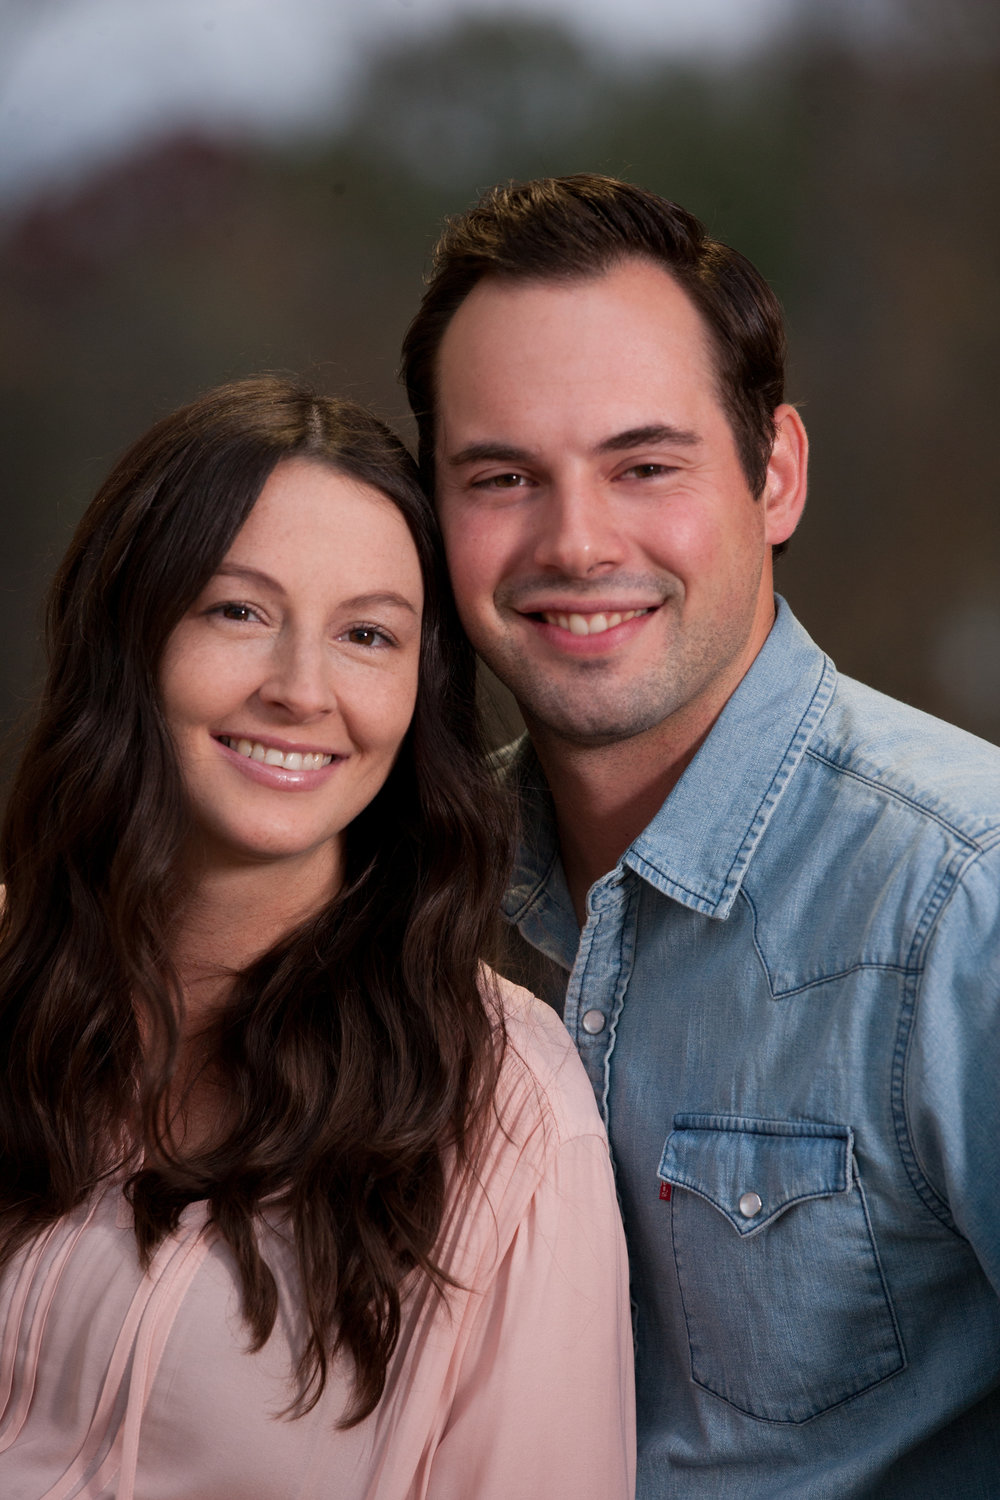 Spencer & Madison DeVries - Spencer & Madison fell in love and married in 2012 after attendingthe J38 discipleship program. After they graduated and married they served on staff at a church in Cary, N.C. In 2013 God called them back to Alabama to serve at The Well. Spencer & Madison have found a home in Scottsboro and love living in their native Alabama. Spencer & Madison have two rambunctious and fun loving boys named Judah & Bethel. Spencer enjoys golf, football, coffee and traveling. Madison loves being a mother, word studies, tennis, organizing and traveling. They both desire to see God's presence and glory sweep the nation and move hearts to the Father.